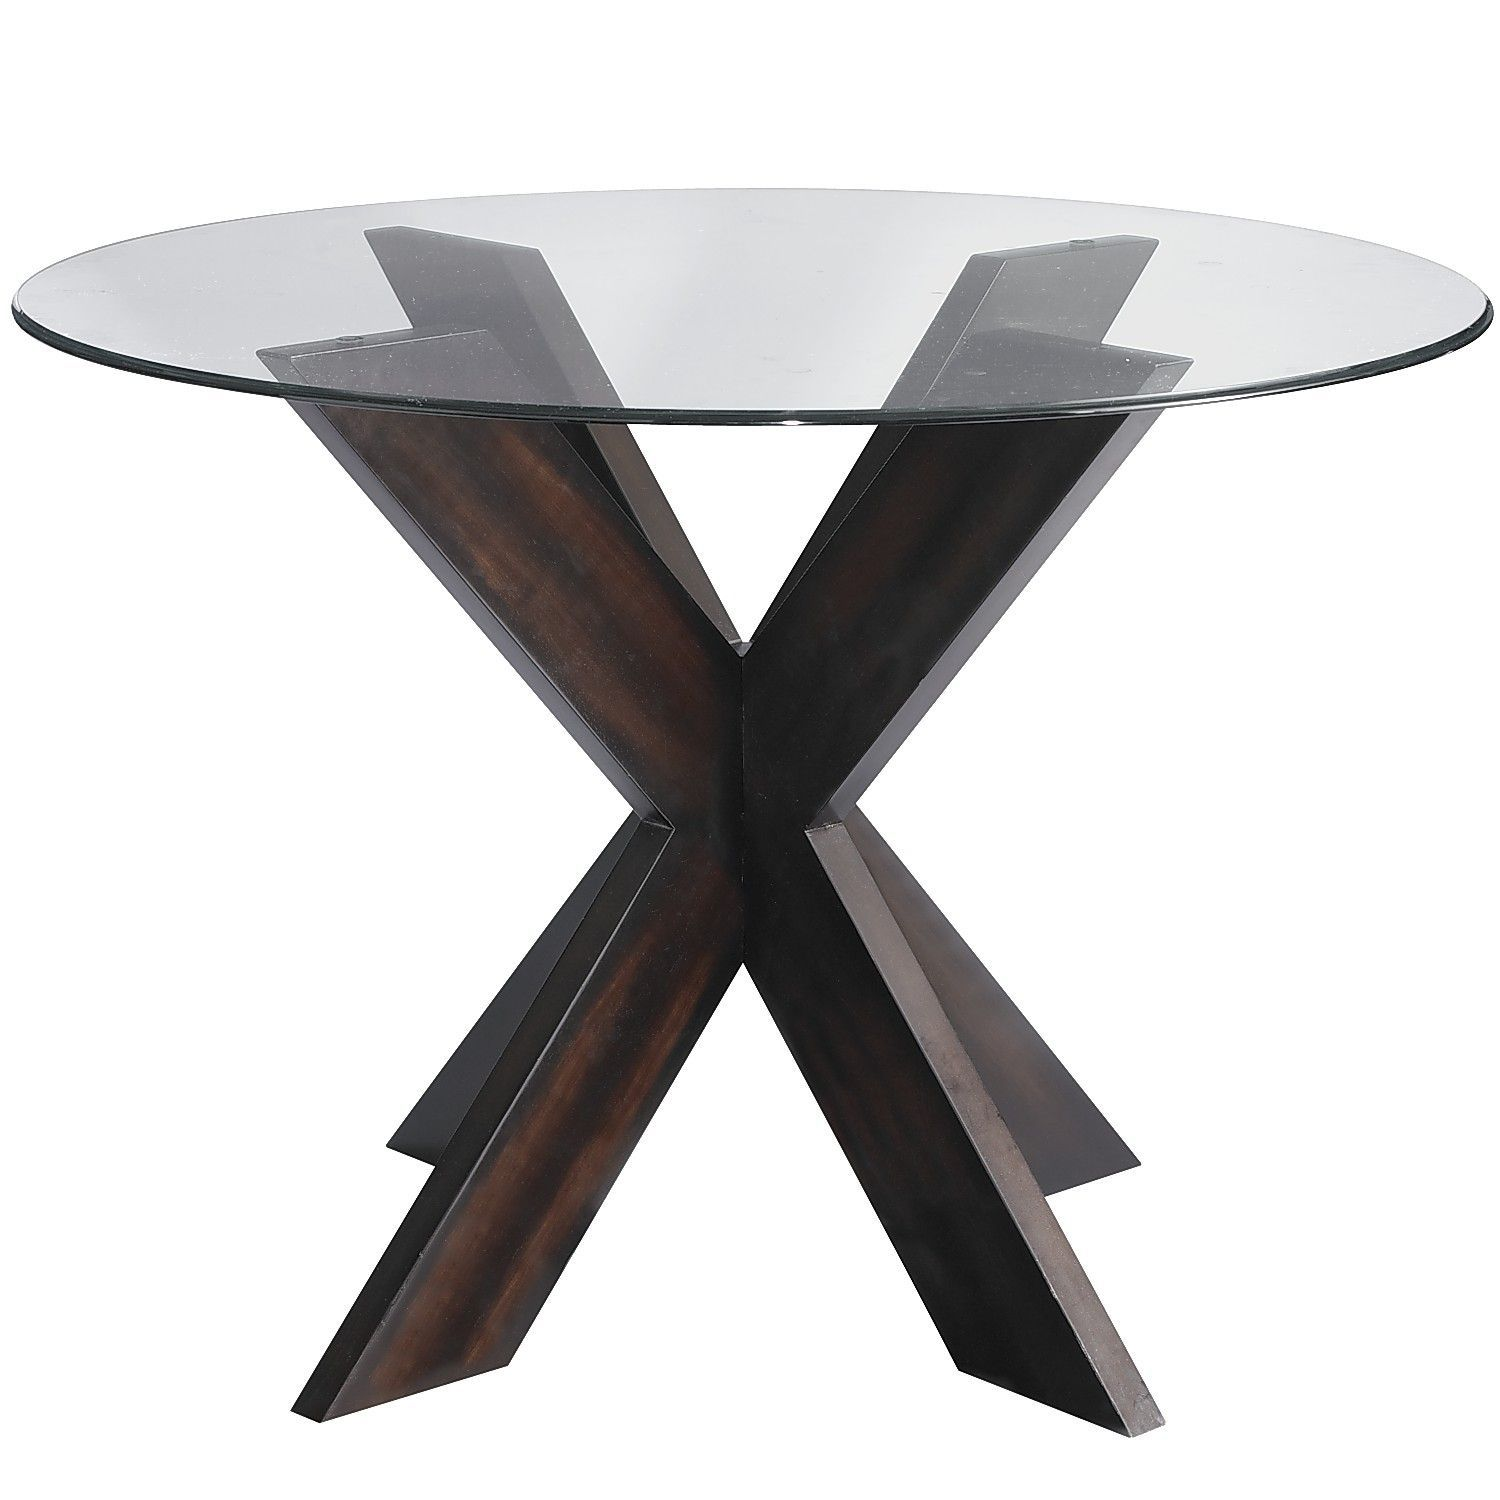 Might Like This For Living Room Window Simon X Table Base Enchanting Pier One Dining Room Furniture Design Ideas